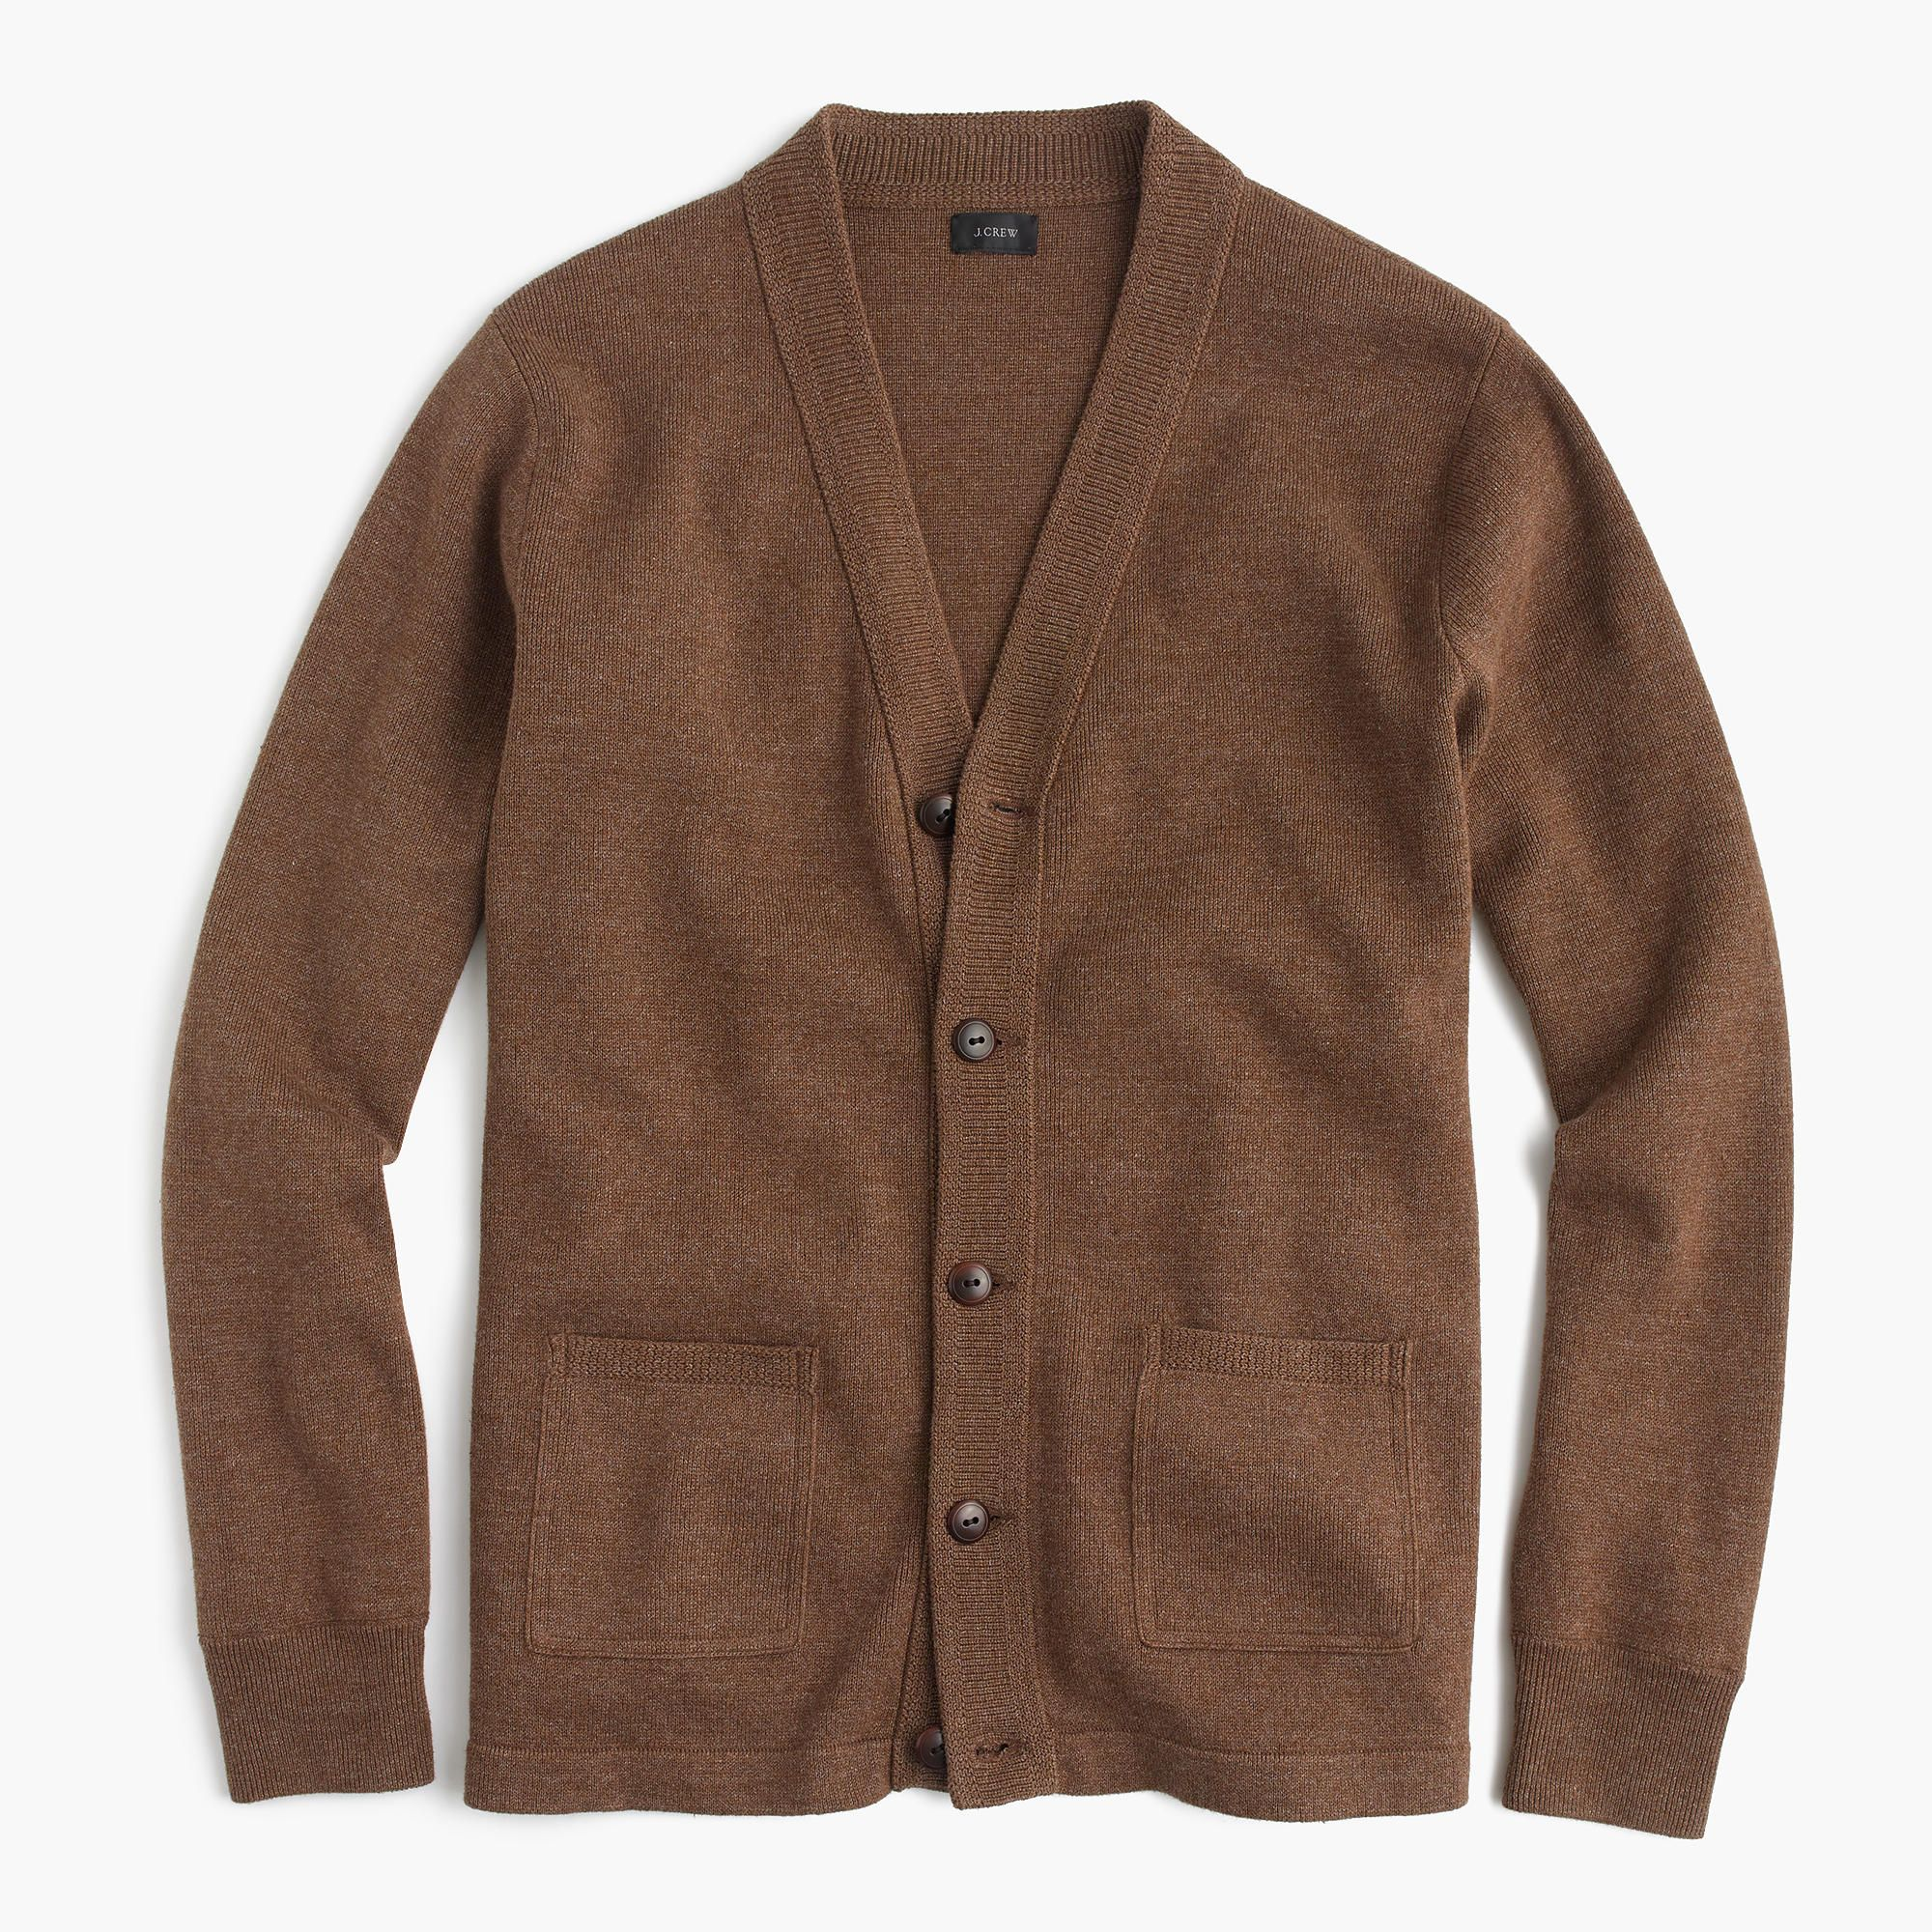 Shop the Cotton-Linen Cardigan Sweater at JCrew.com and see the ...